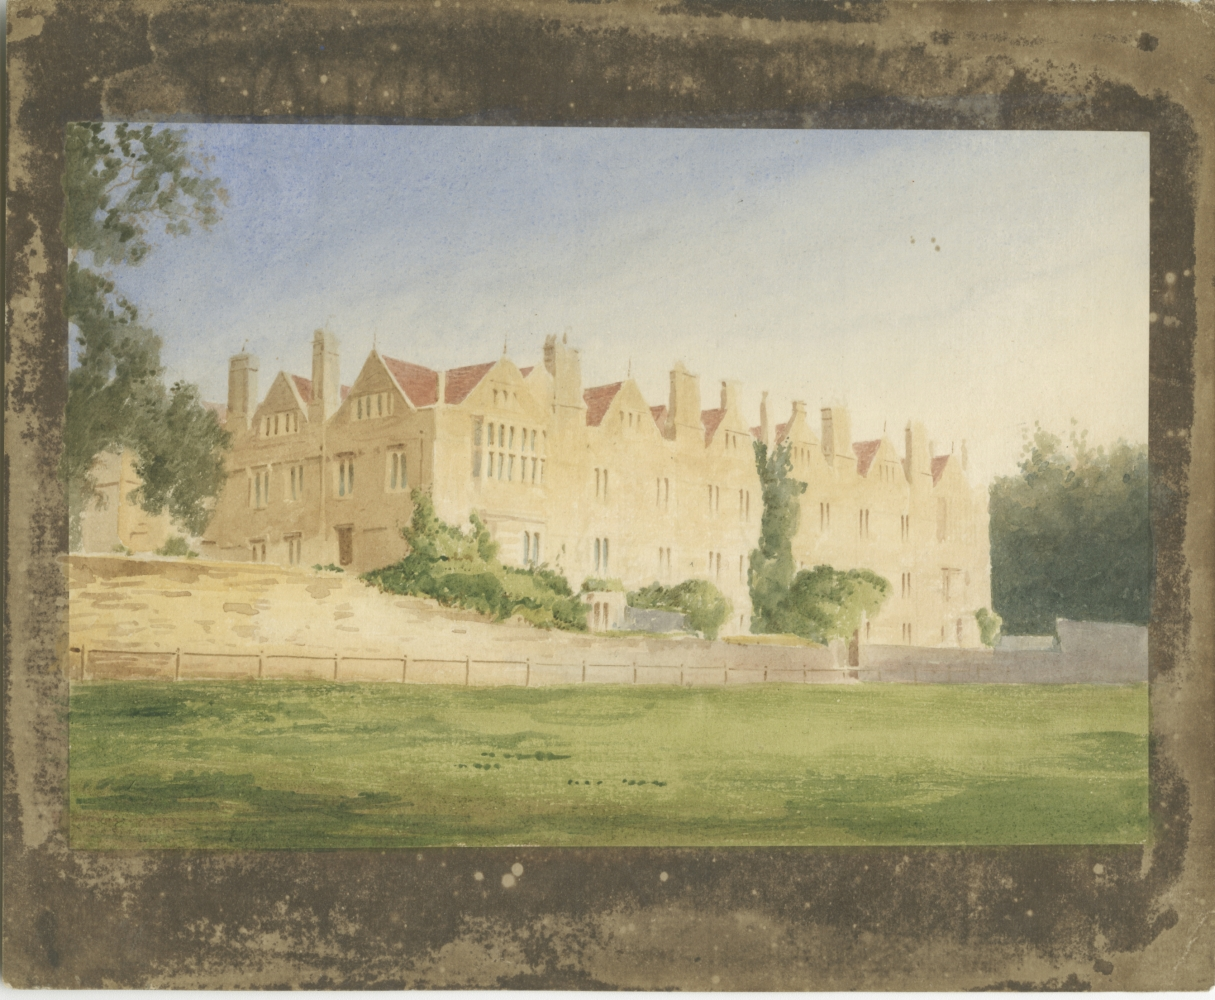 William Henry Fox TALBOT (English, 1800-1877) Merton College from the fields, Oxford, circa 1843 Hand colored (possibly by André Mansion) salt print, from a calotype negative 13.6 x 20.2 cm